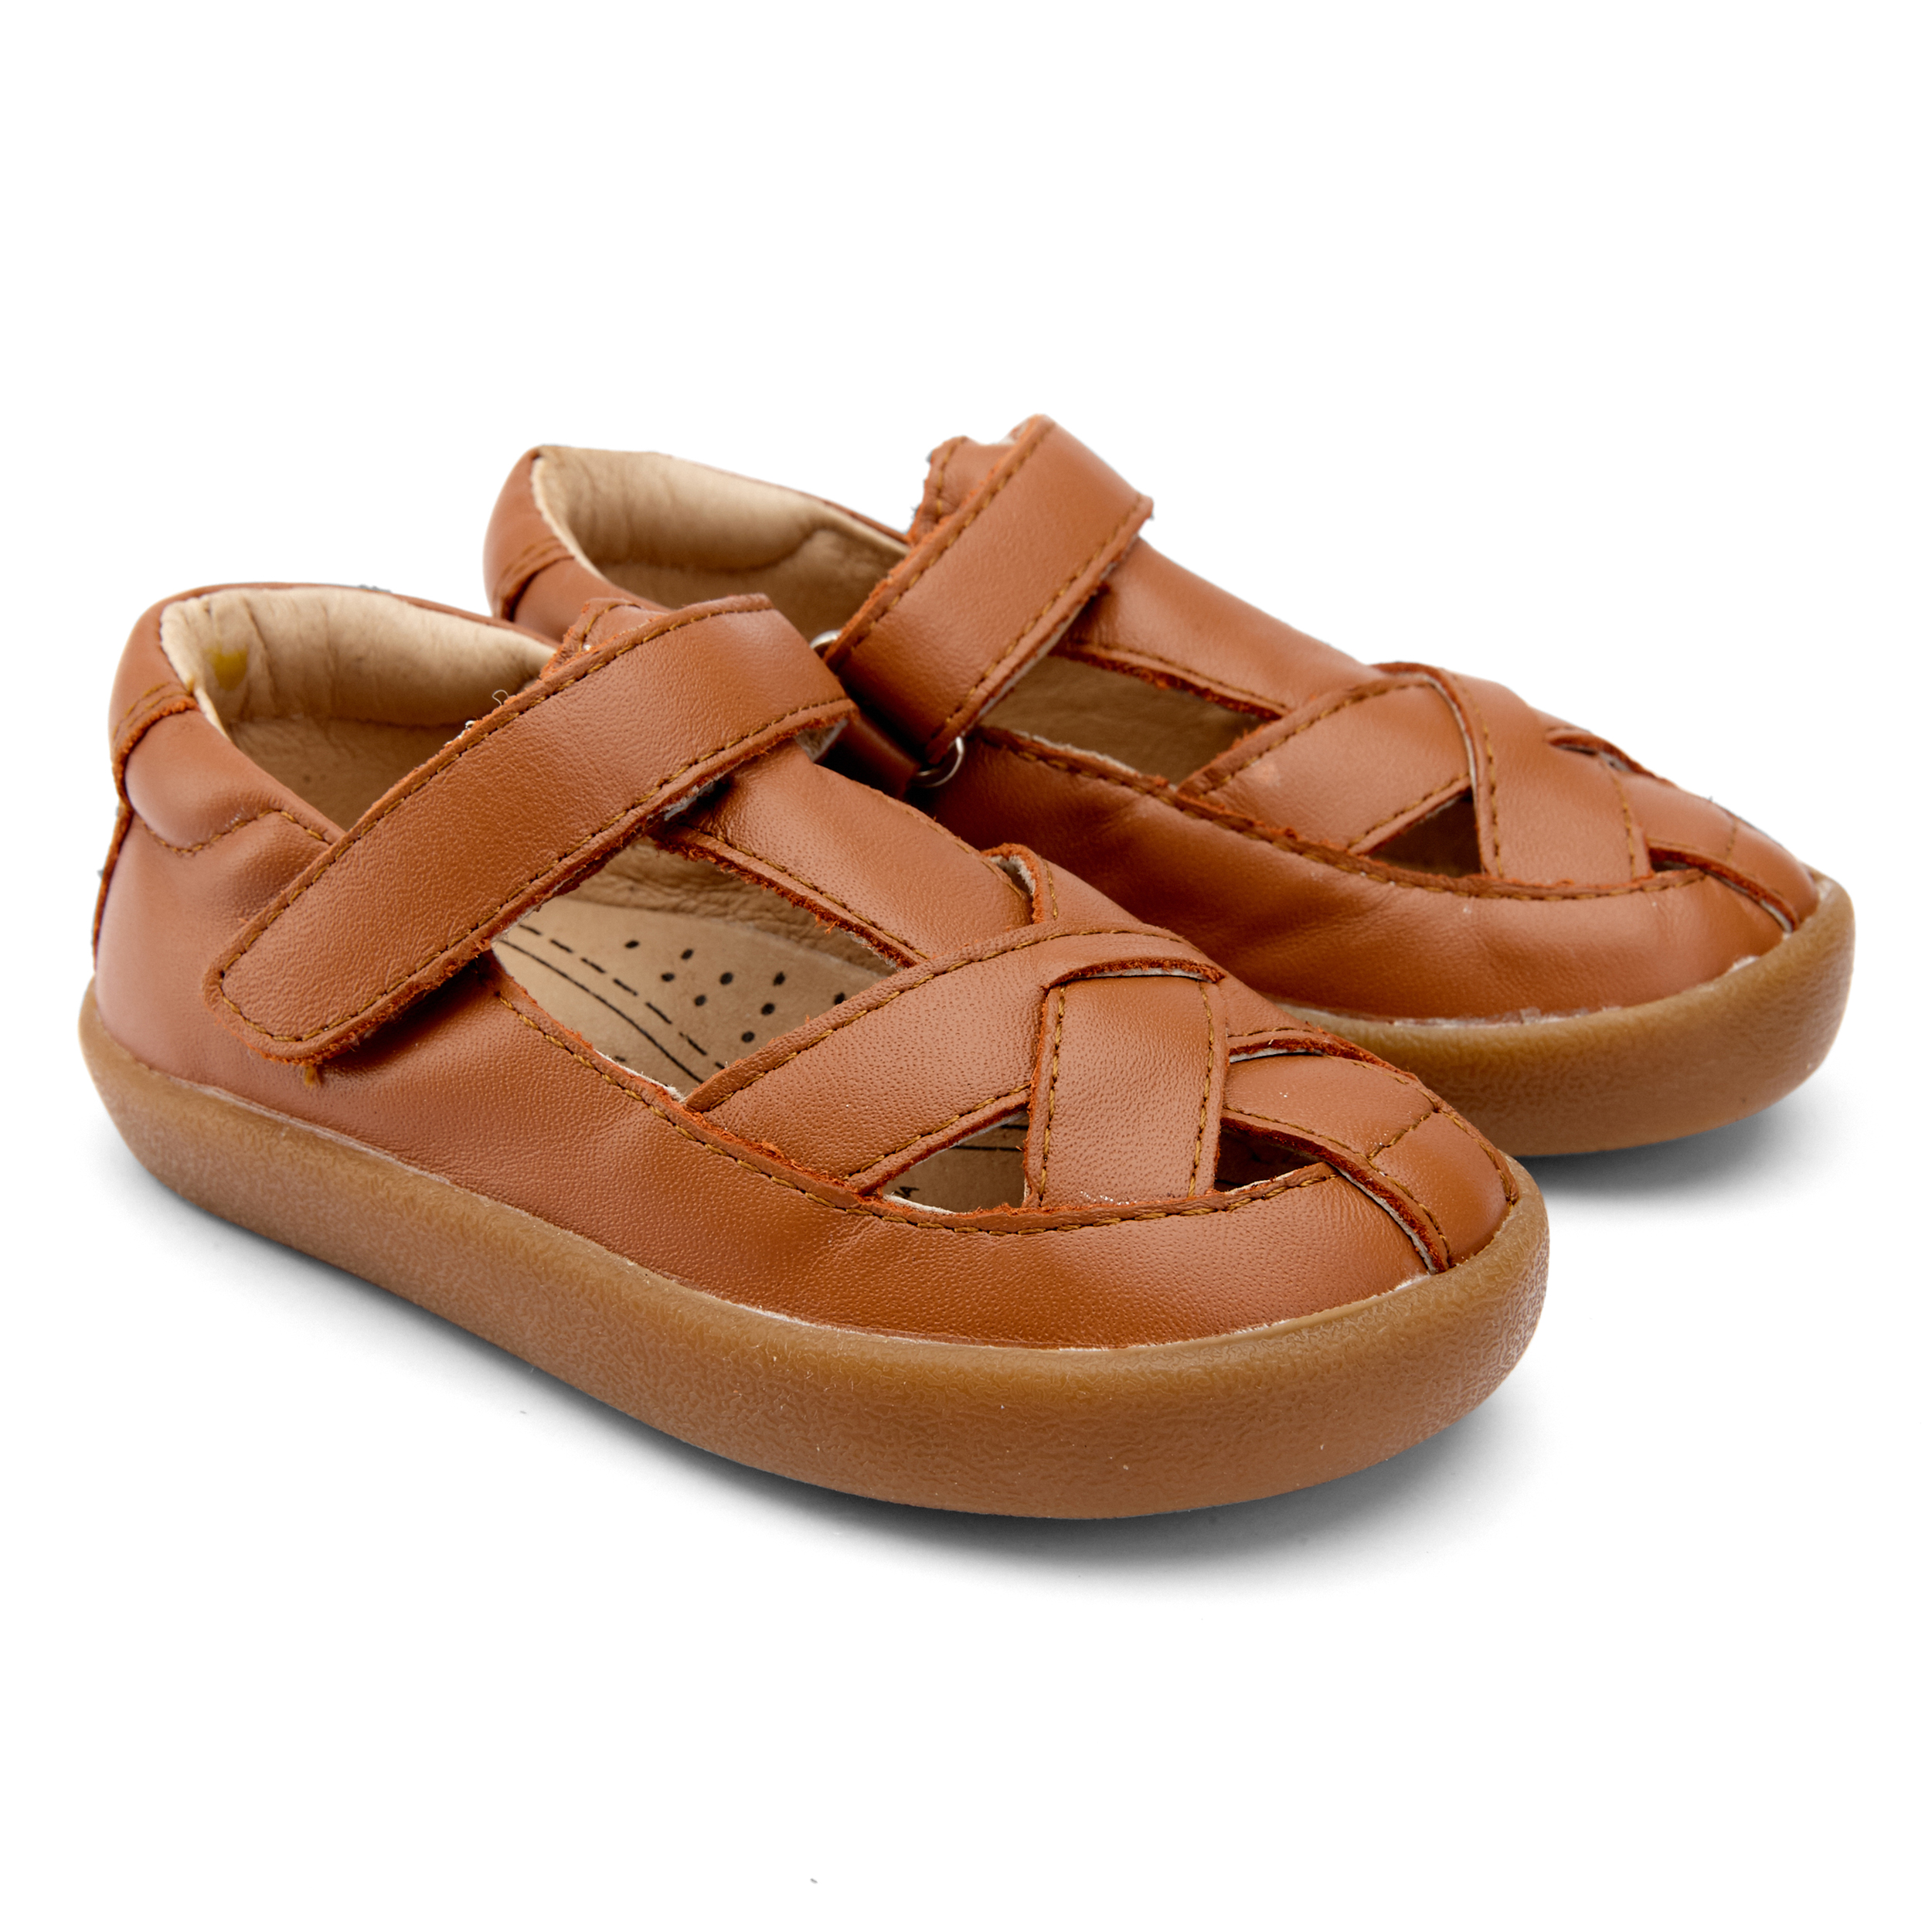 OLD SOLES Coolin-Off Tan Closed Toe Sandals 5057